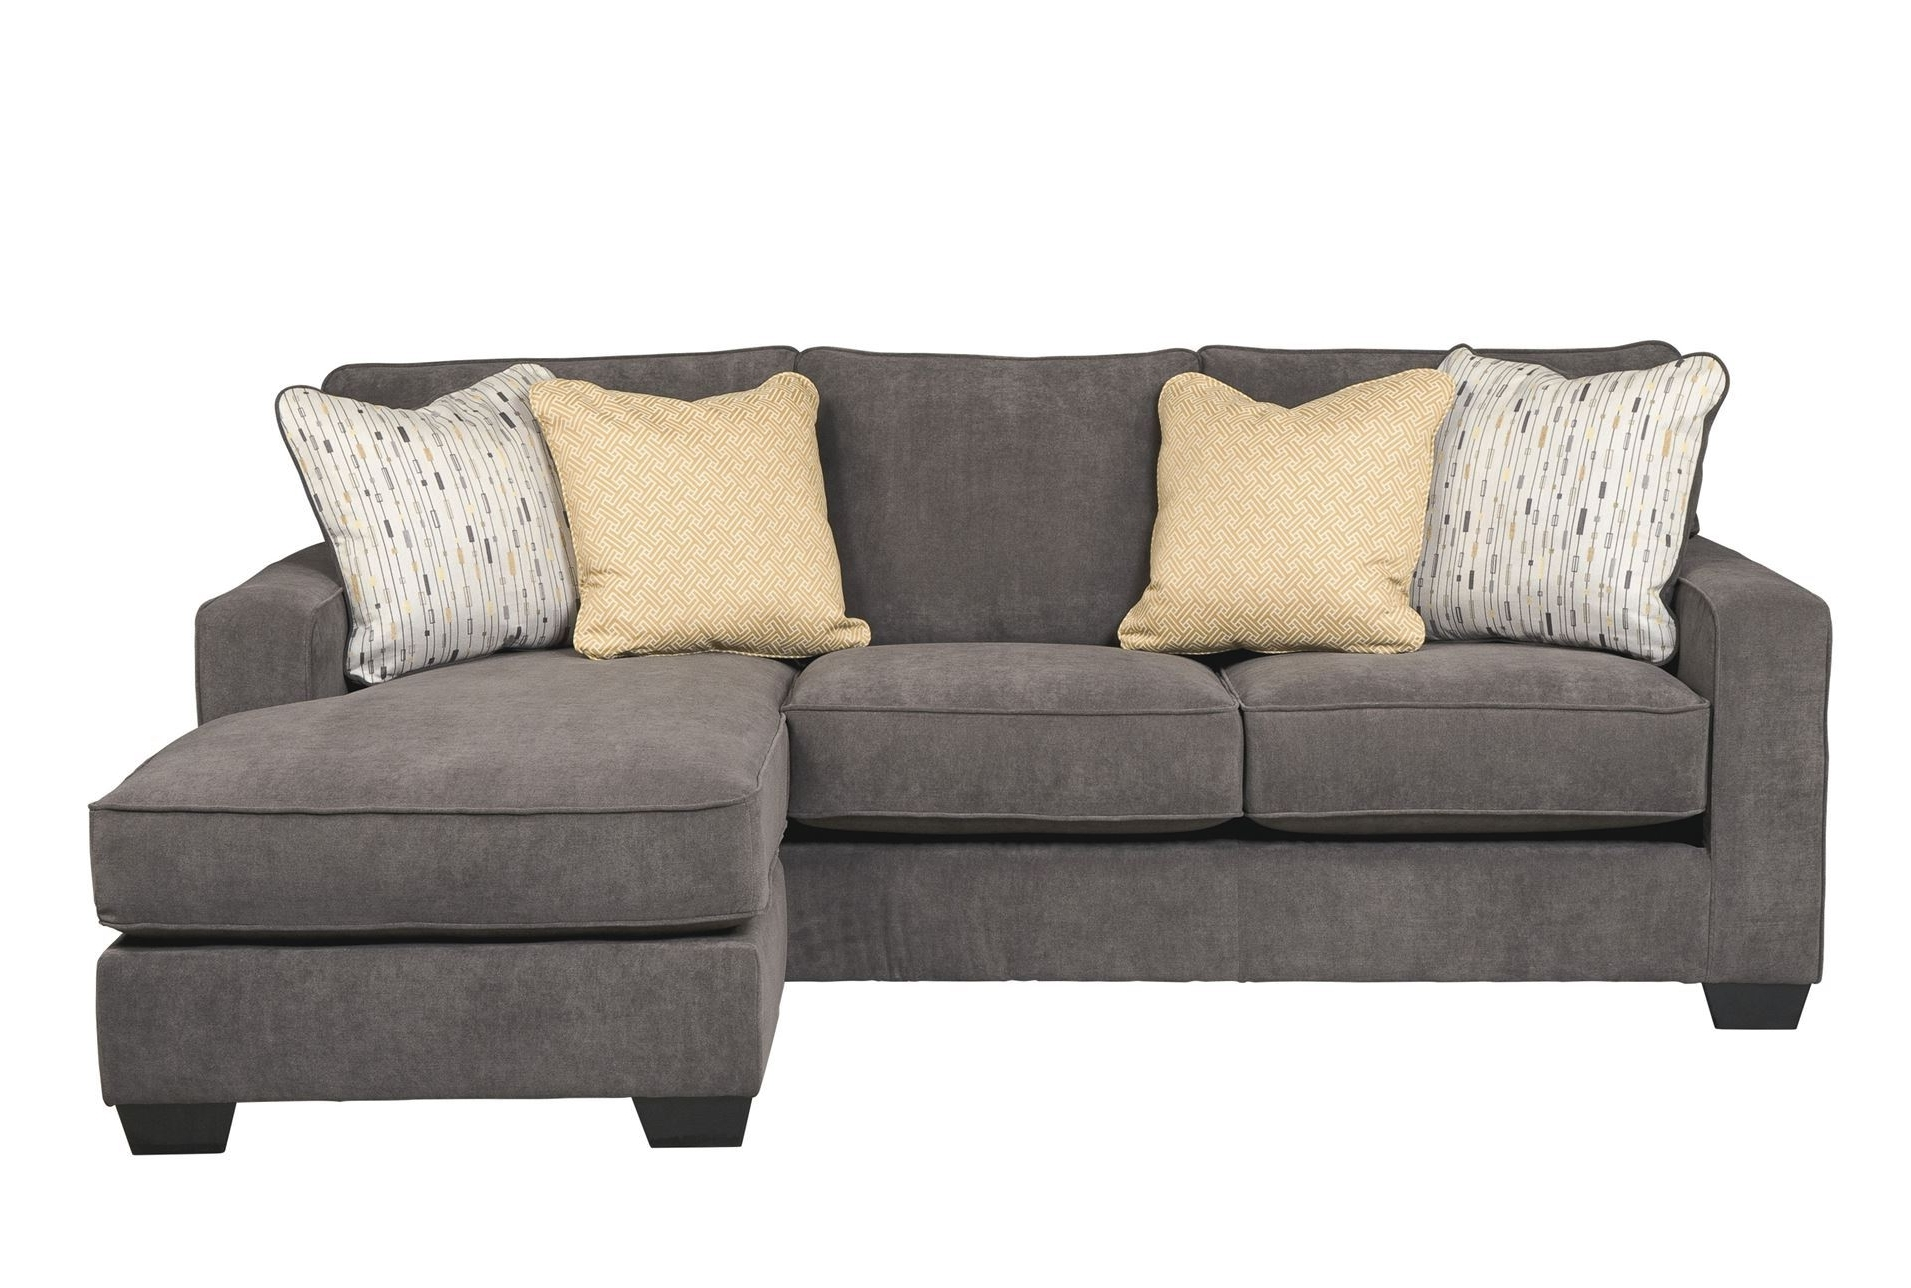 Most Current Grey Sectional Sofas With Chaise For L Grey Fabric Sectional Couch With Chaise And Three Seats (View 6 of 15)